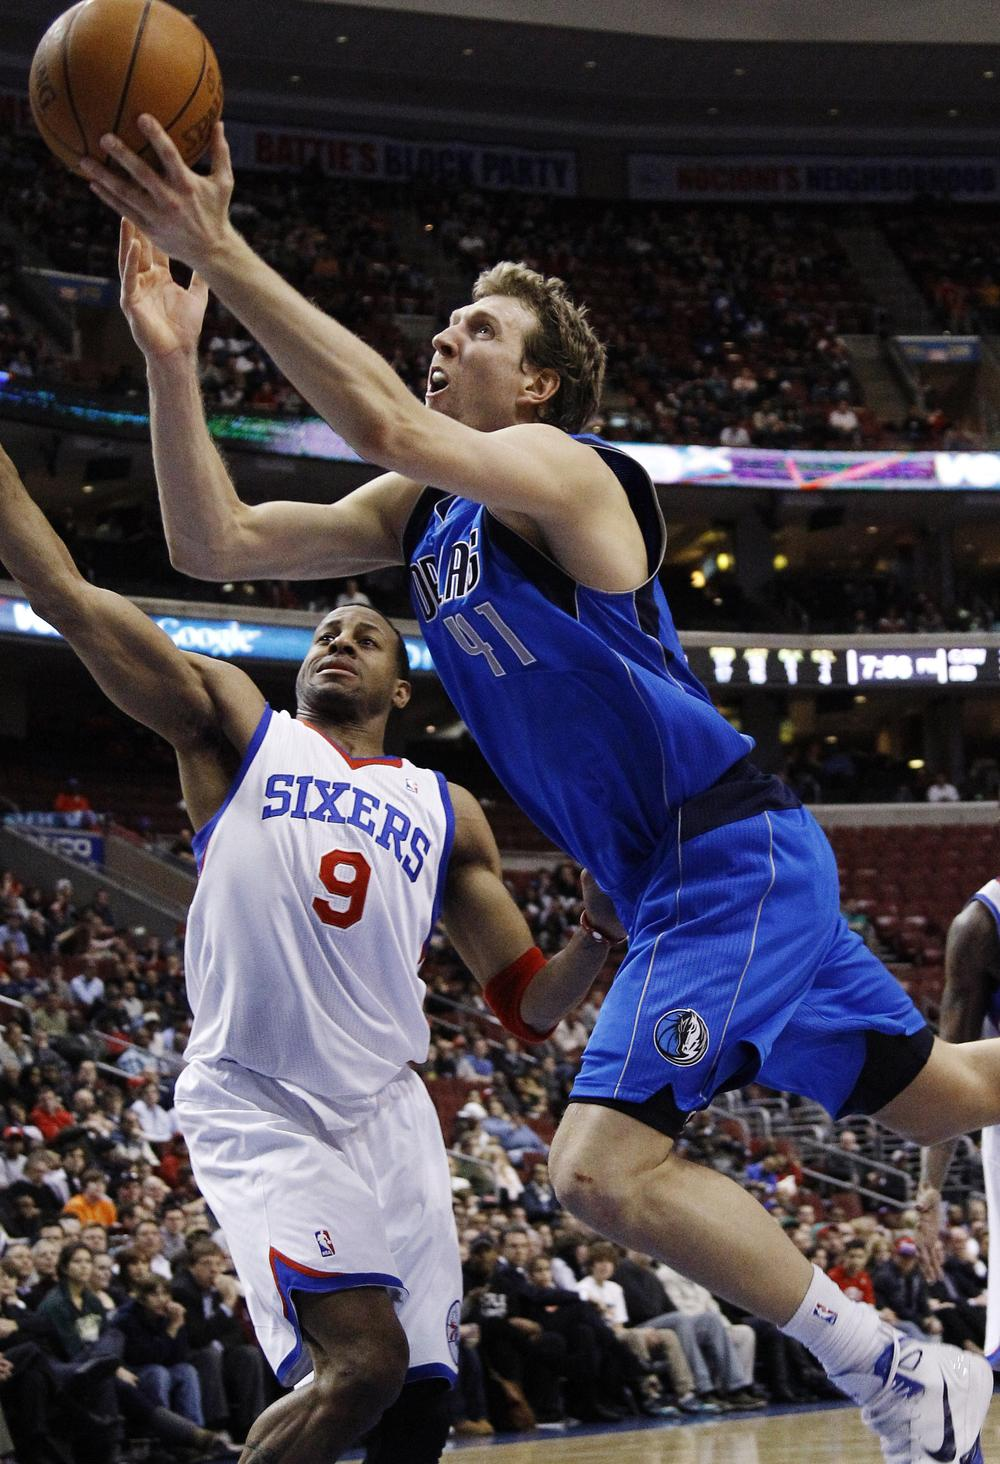 Dirk Nowitzki and the Dallas Mavericks are looking stronger by the day. Will they the opportunity to compete next season though?(AP)